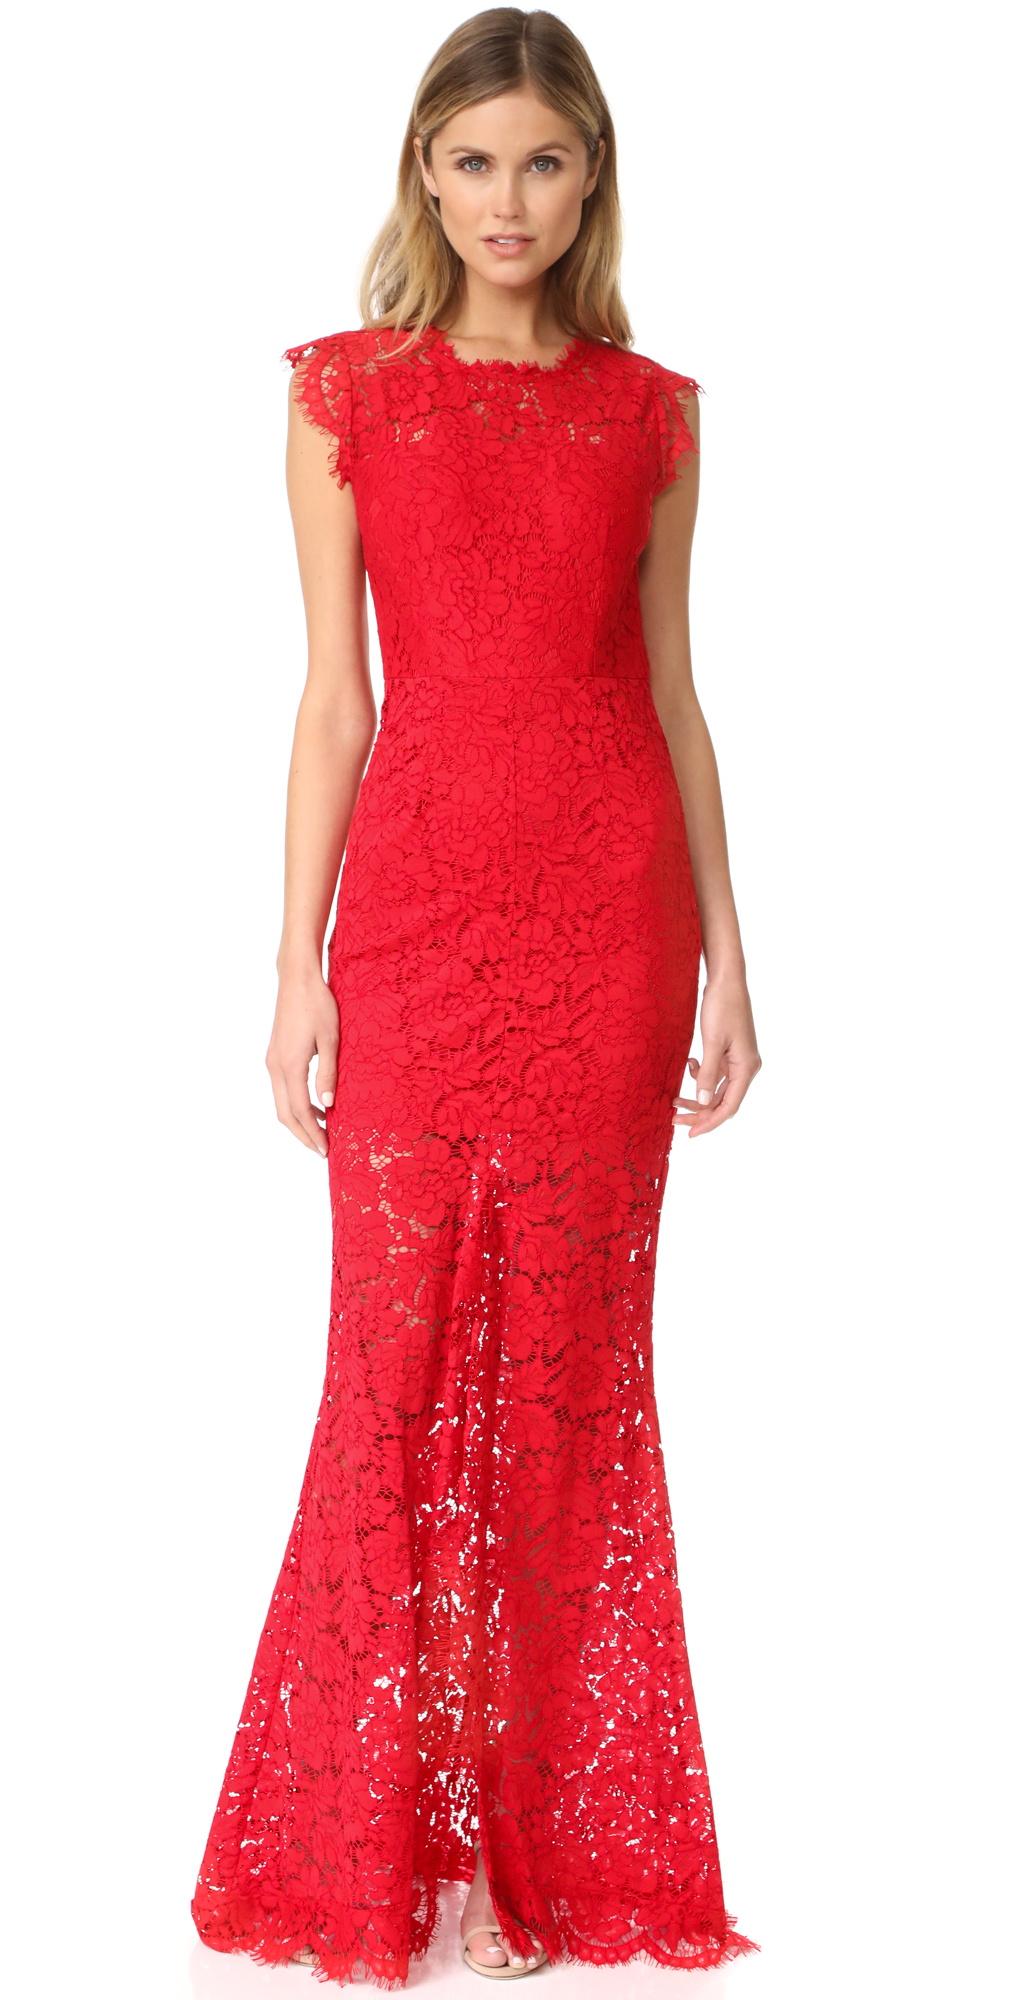 Rachel Zoe Estelle Cutout Back Maxi Dress | SHOPBOP